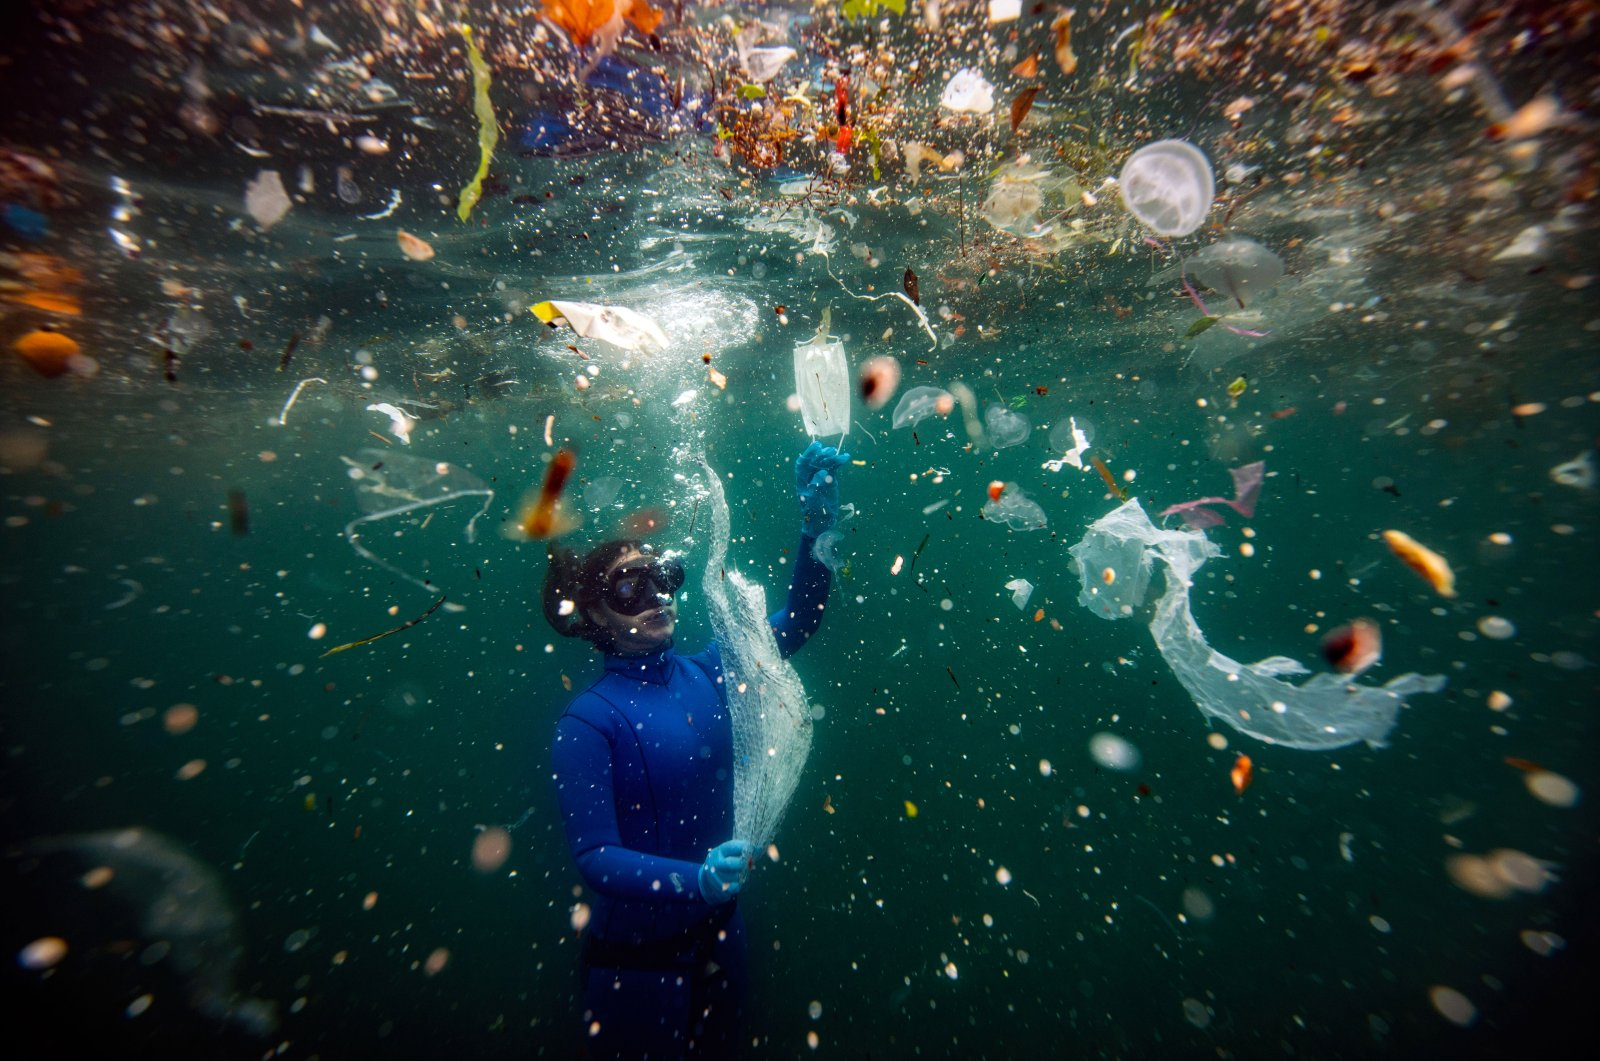 Şebnem Coşkun's photo of Turkish diver Şahika Ercümen among the plastic pollution in the Bosporus Strait won the Nature and Environment category at Pictures of the Year, Asia. (AA Photo)